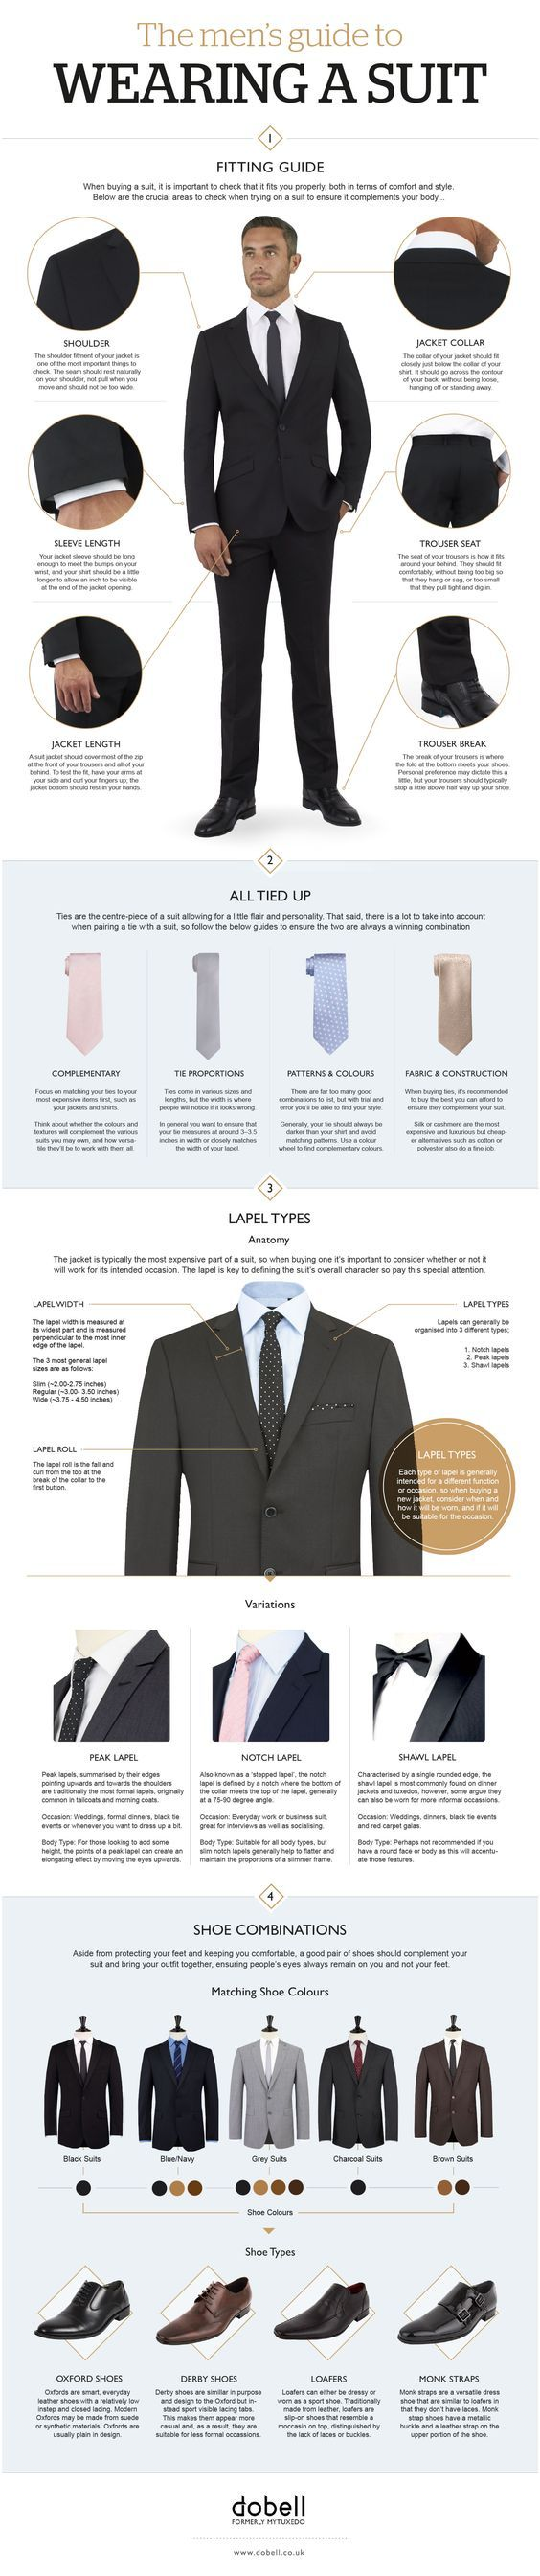 mens-guide-on-how-to-look-good-in-a-suit:  #Style #Fashion #Menswear Re-pinned by www.avacationrental4me.com